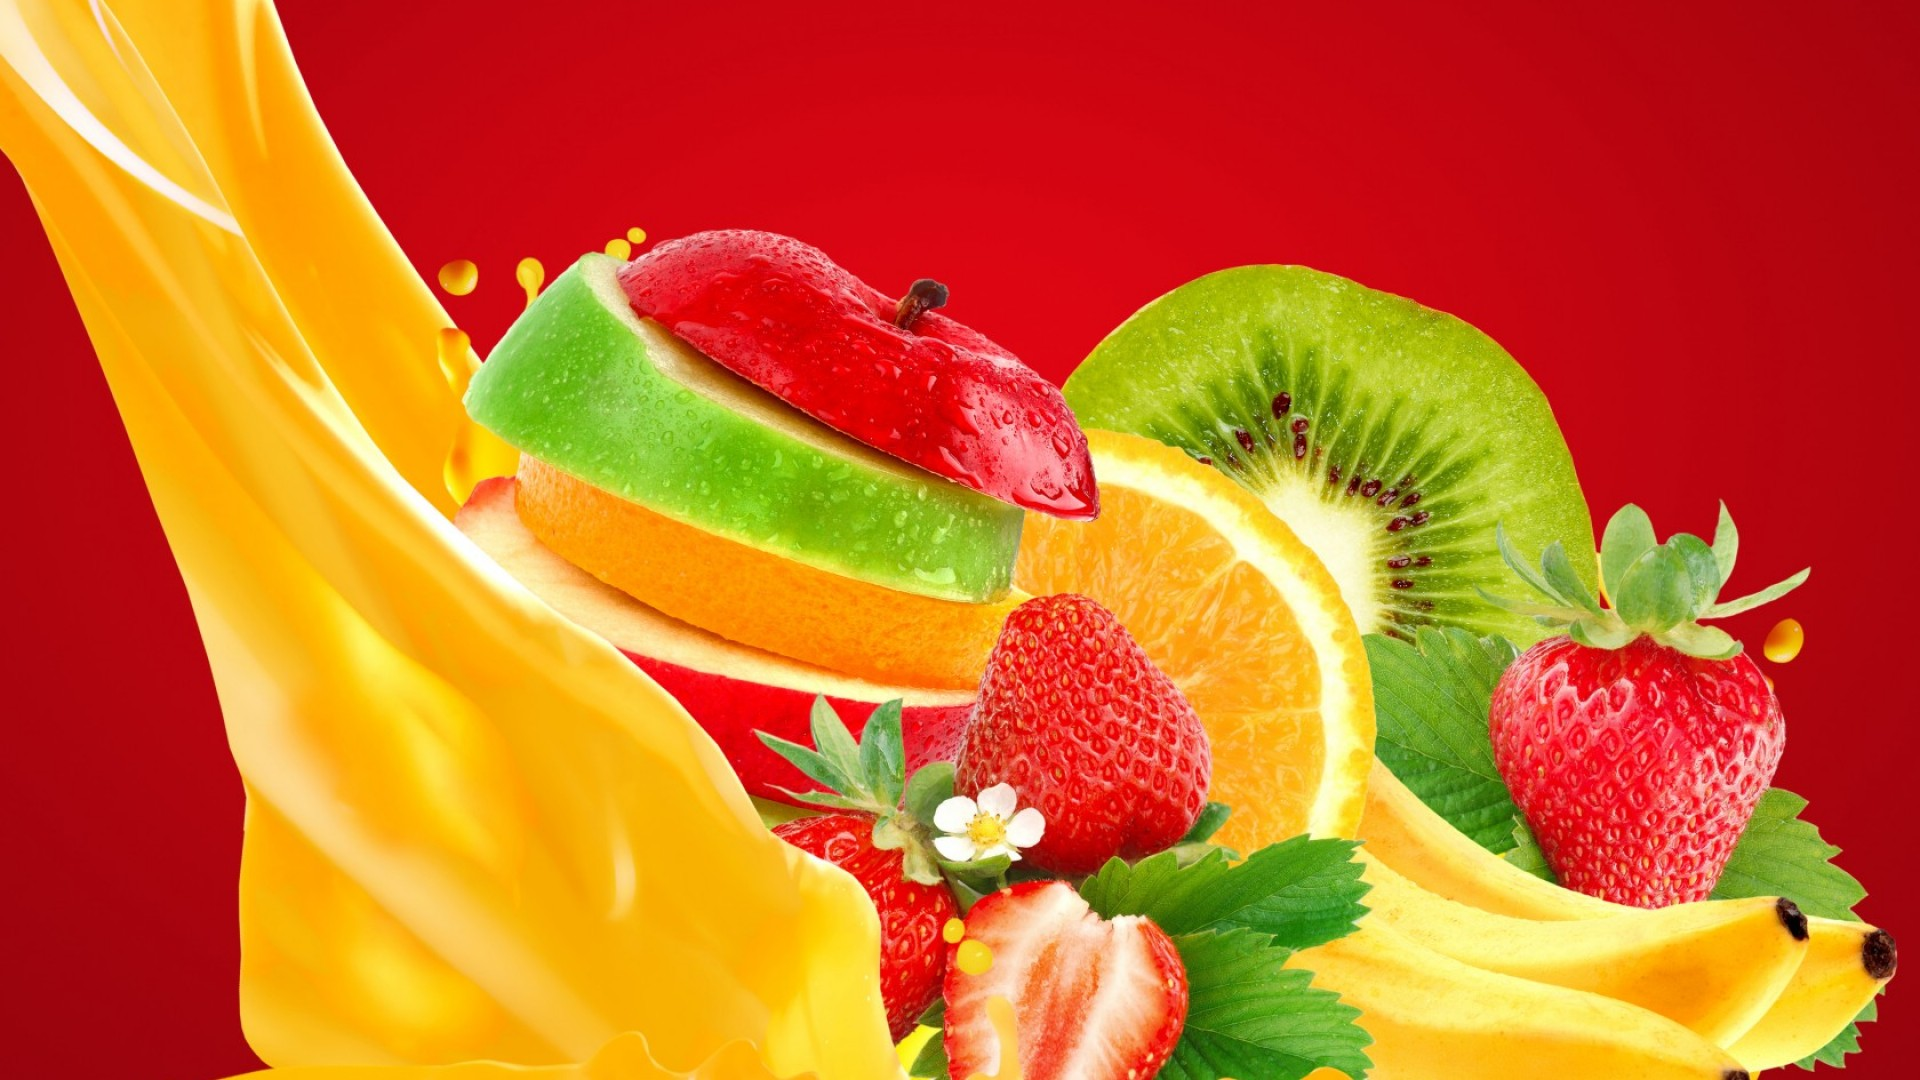 Wallpaper apple banana strawberry orange juice Food 812 1920x1080